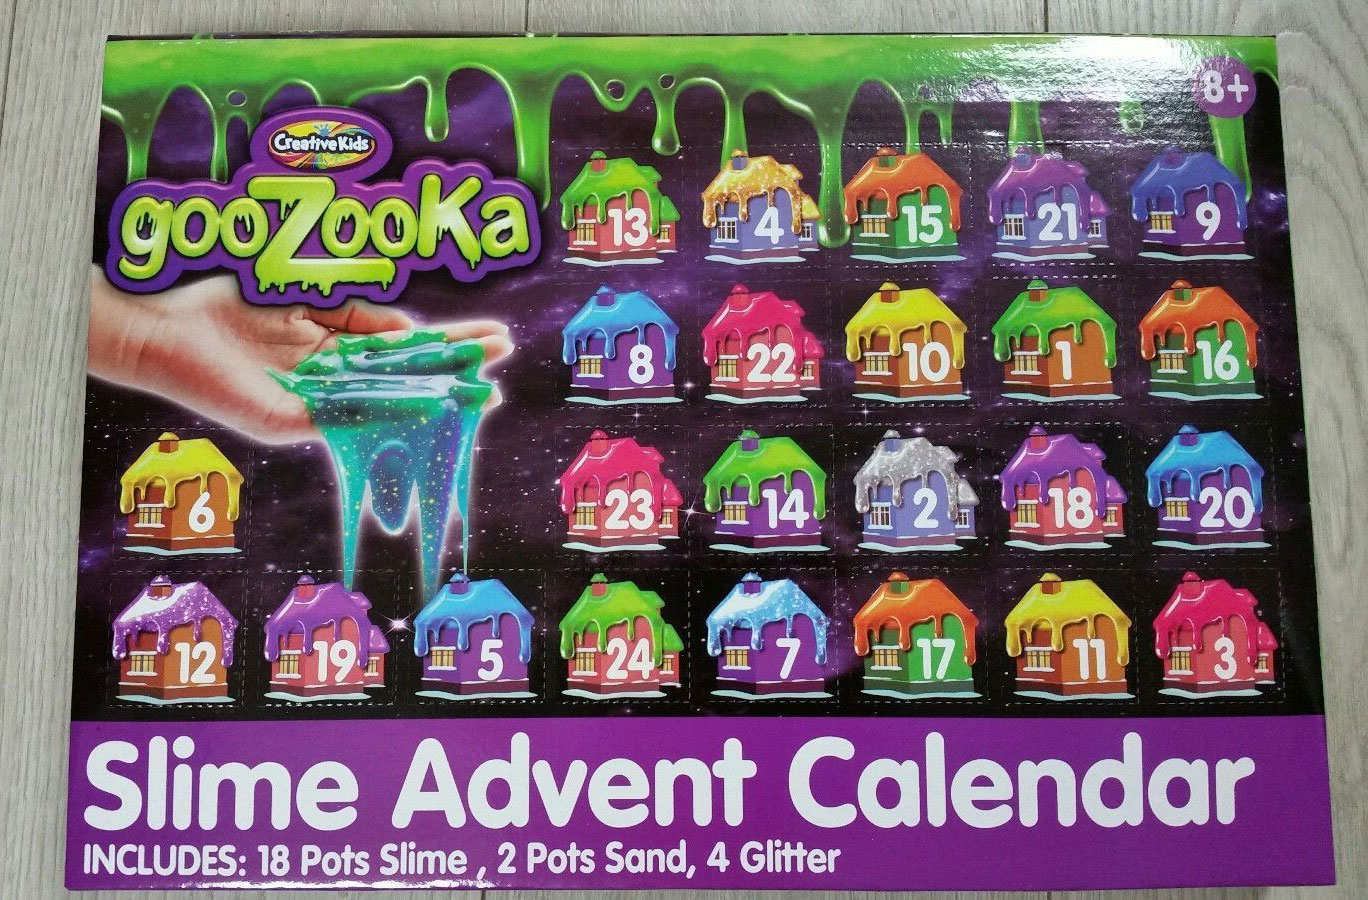 Slime Advent Calendar Selling For Five Times The Original